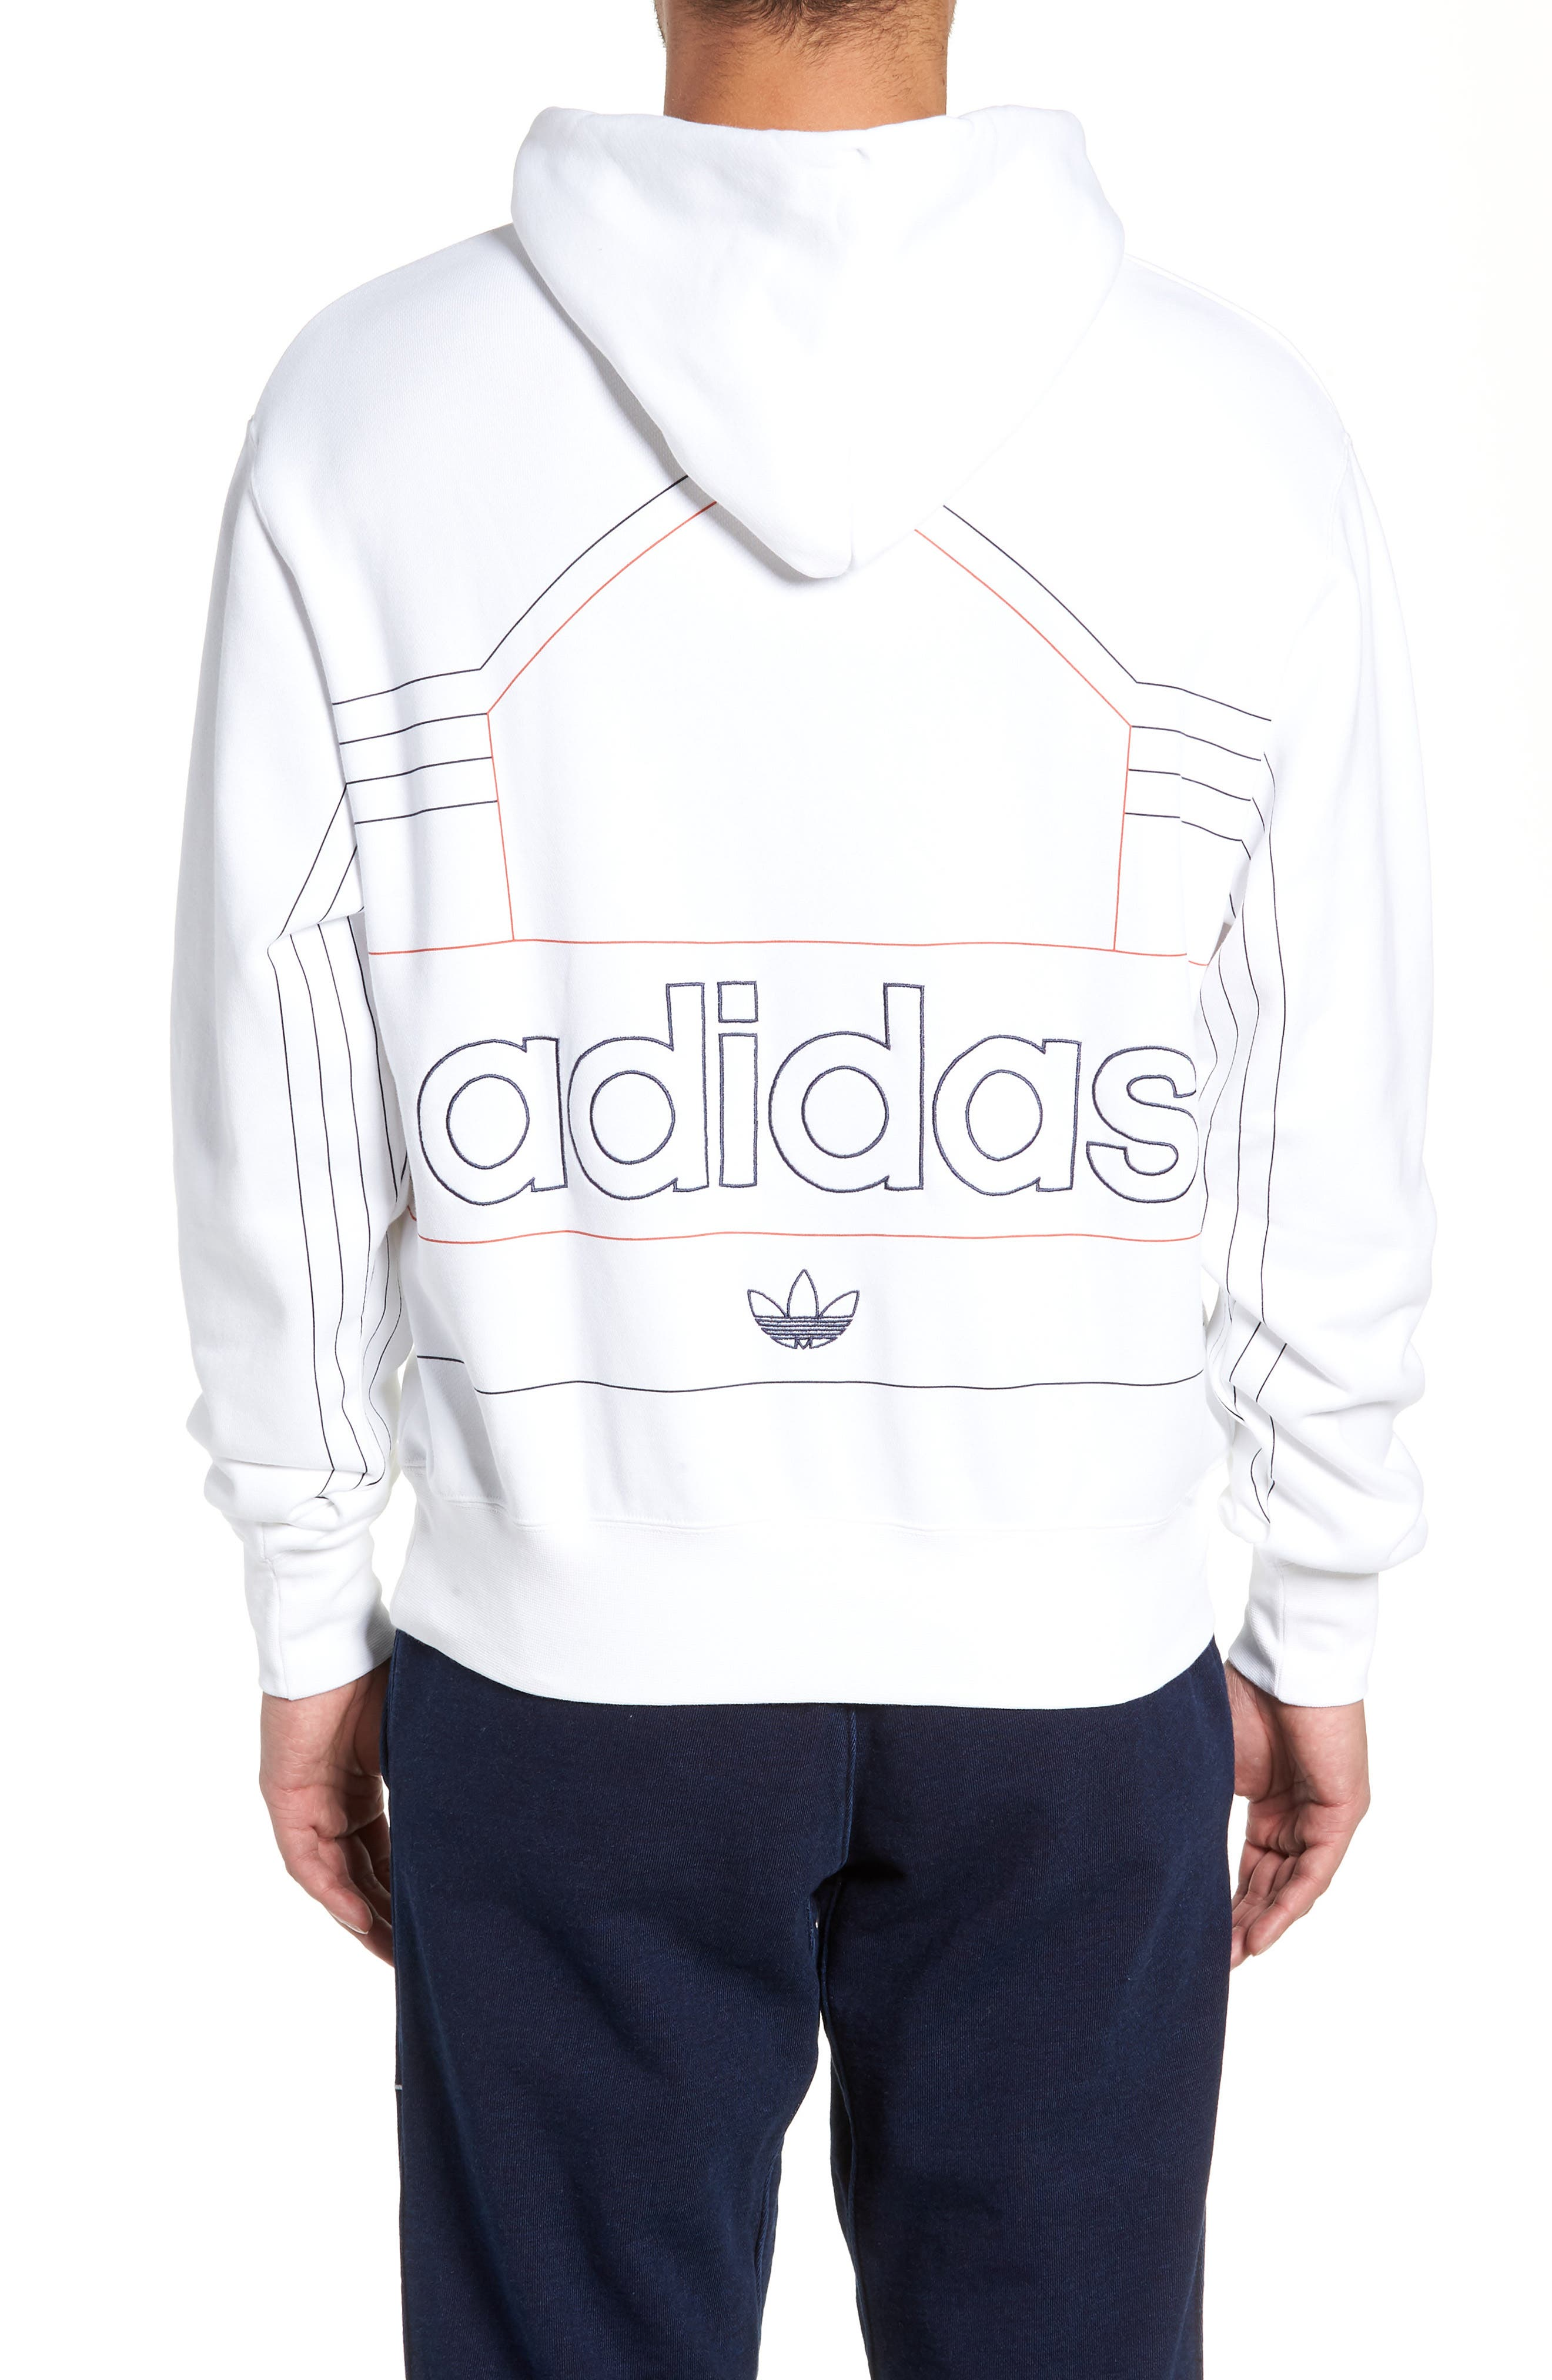 ADIDAS ORIGINALS, Ewing Hooded Sweatshirt, Alternate thumbnail 2, color, WHITE/ RAW AMBER